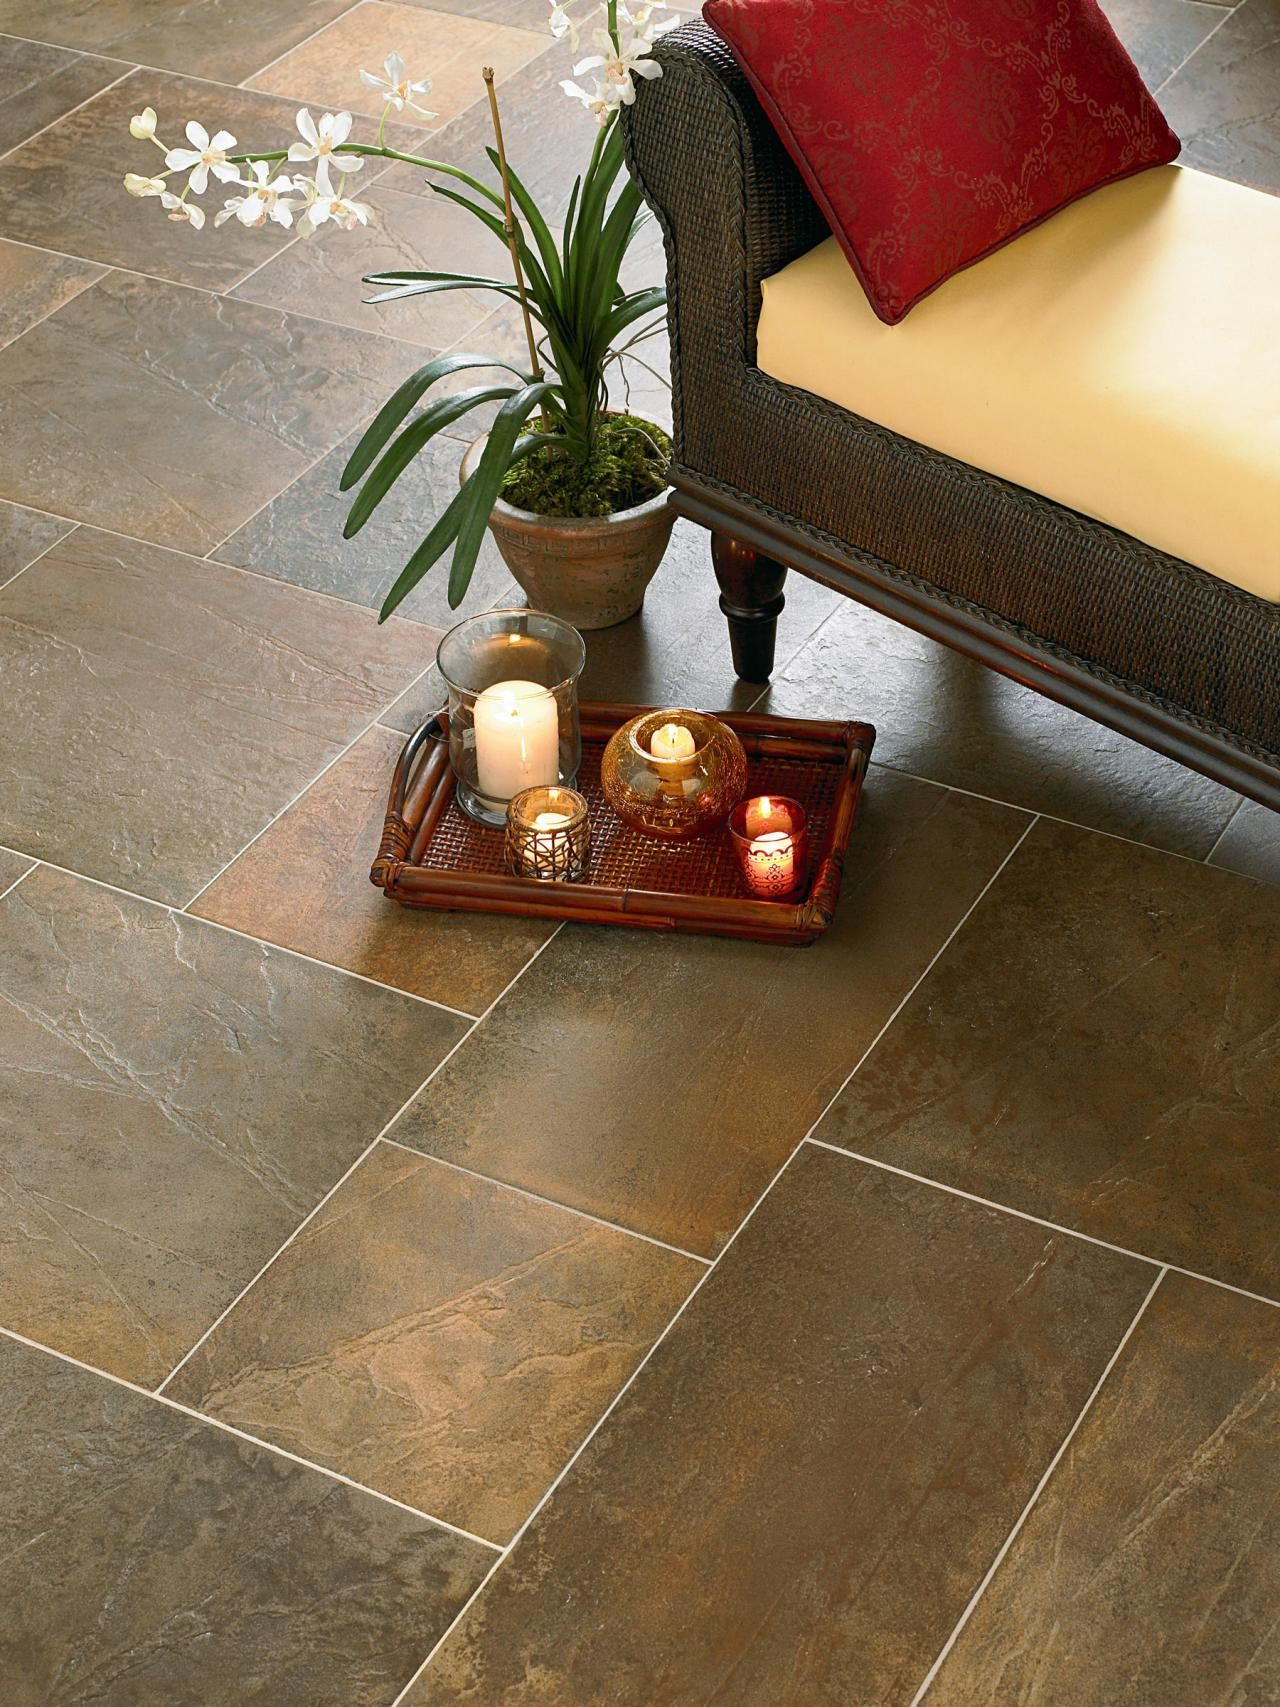 Tile Flooring Options | Flooring options, Hgtv and Decorating